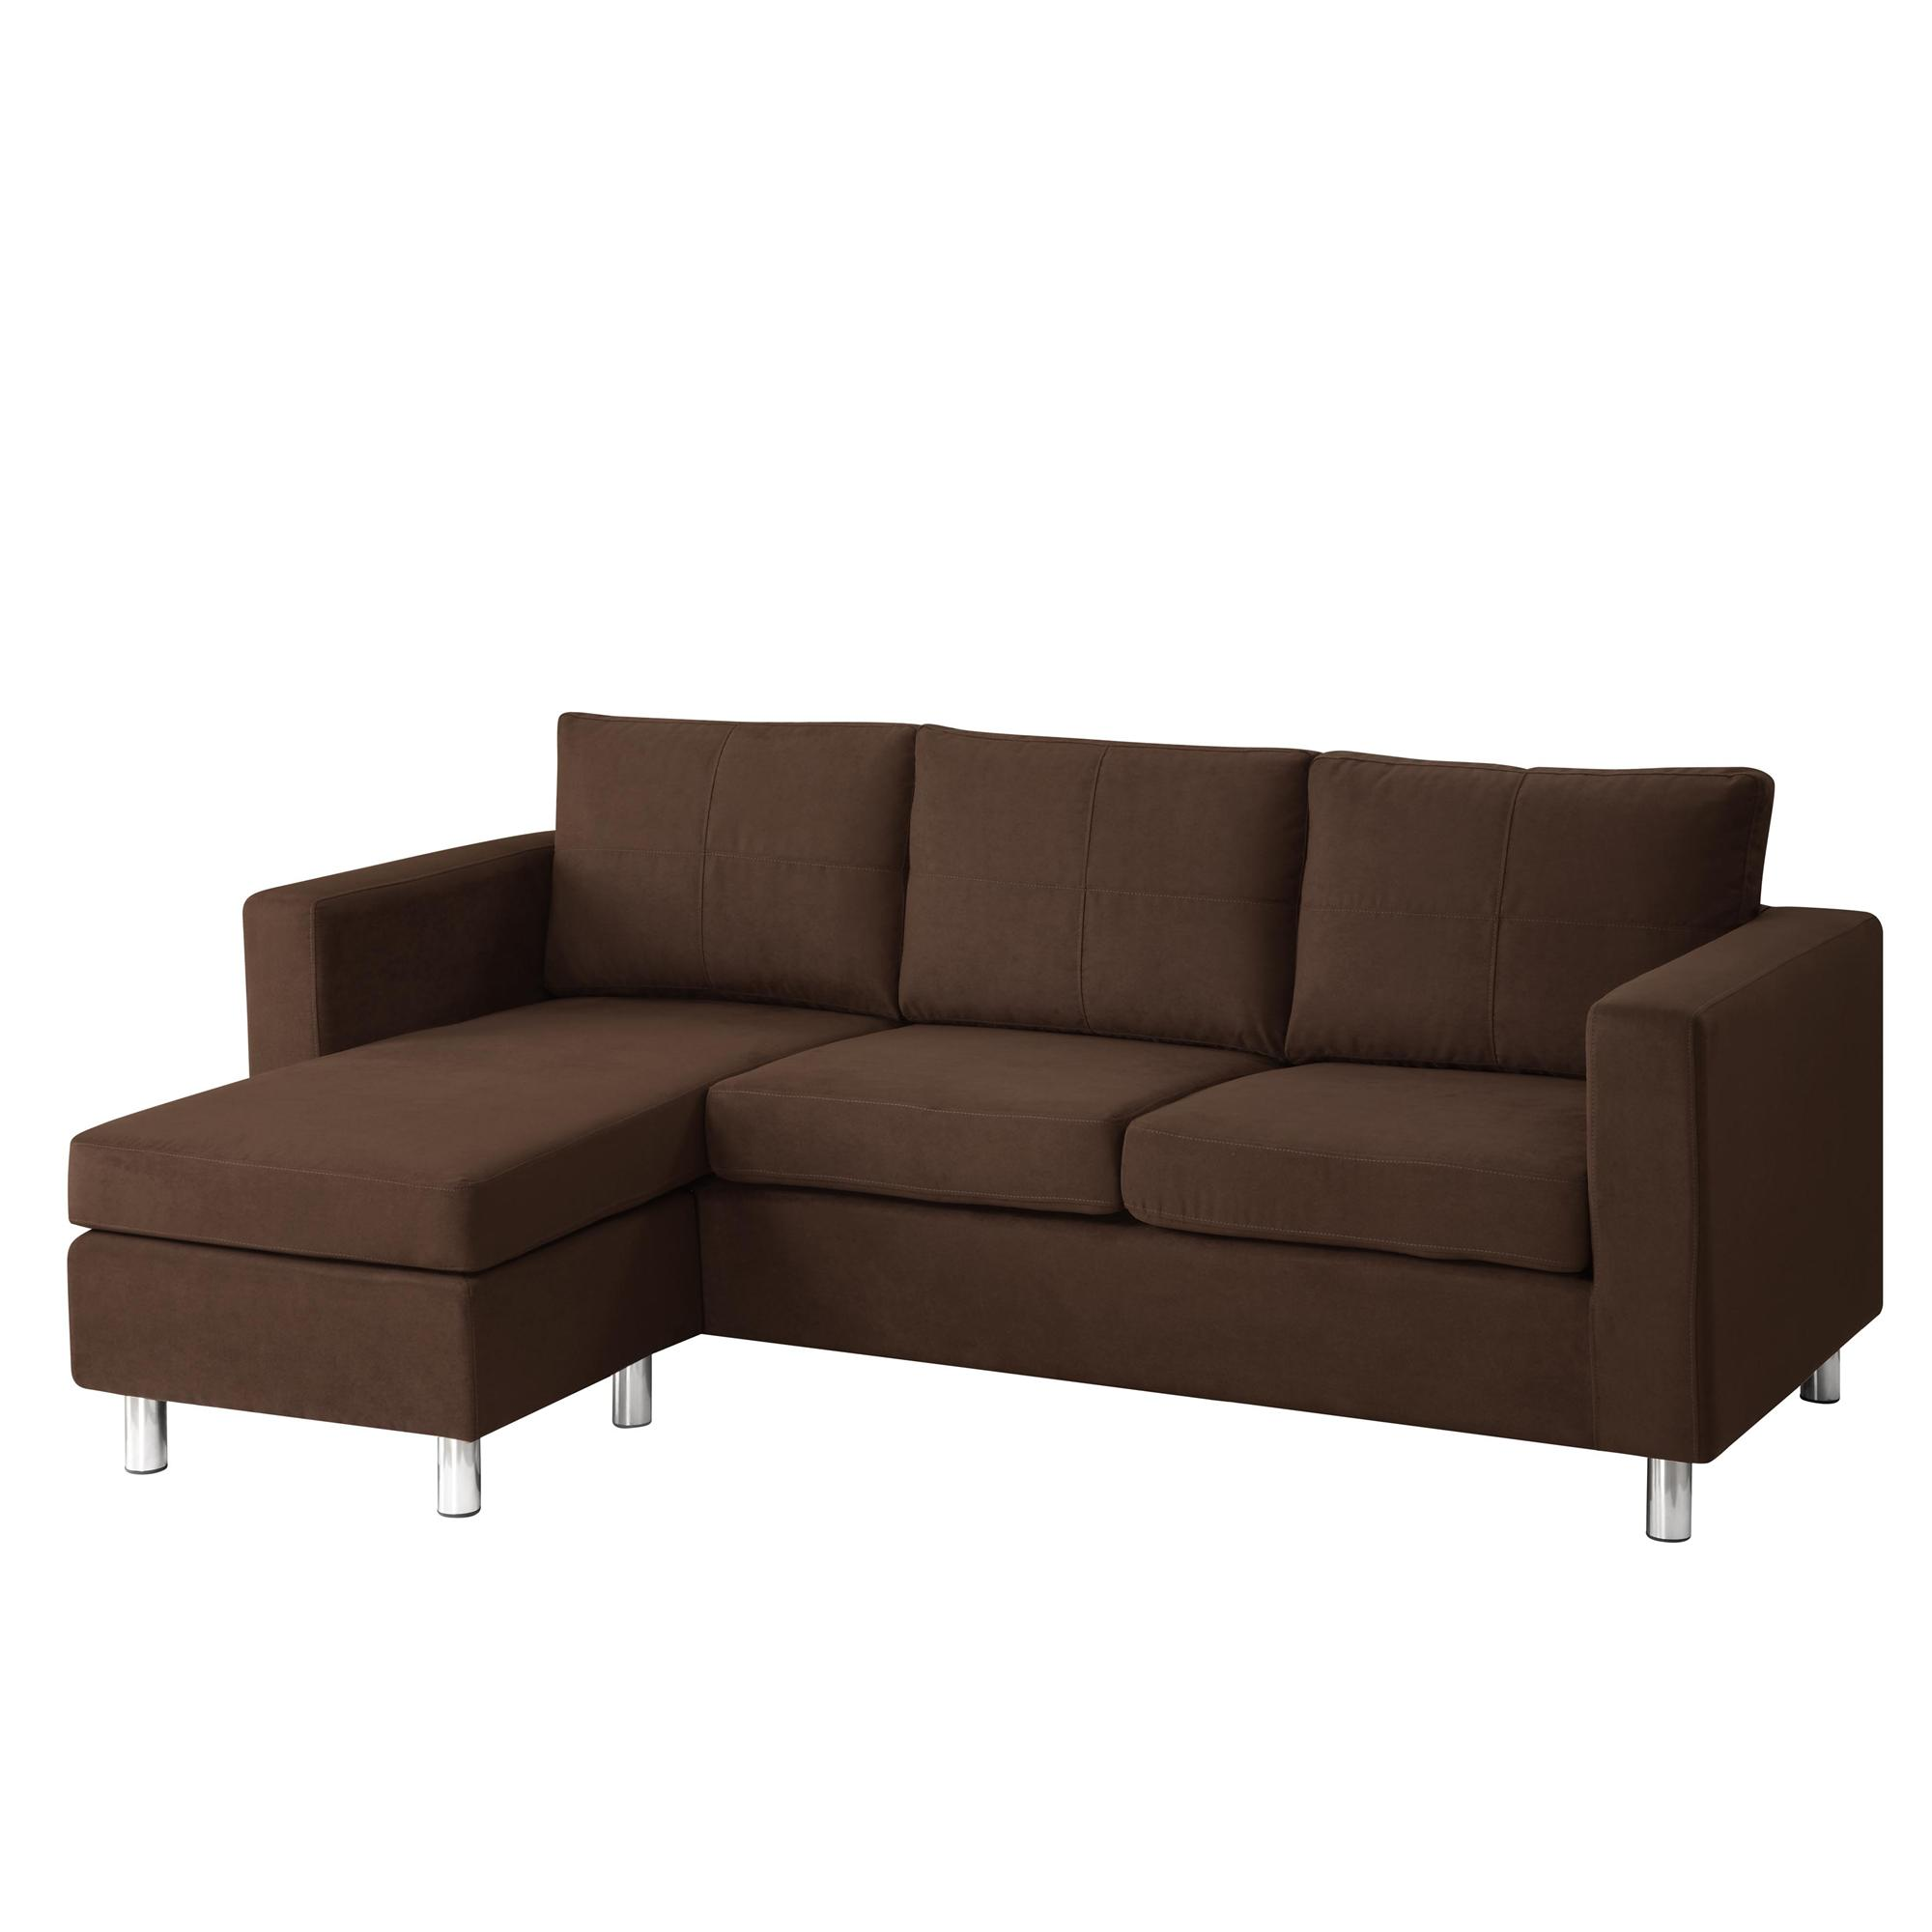 modern sofa colors side elevation cad block free astonishing minimalist brown color small sectional